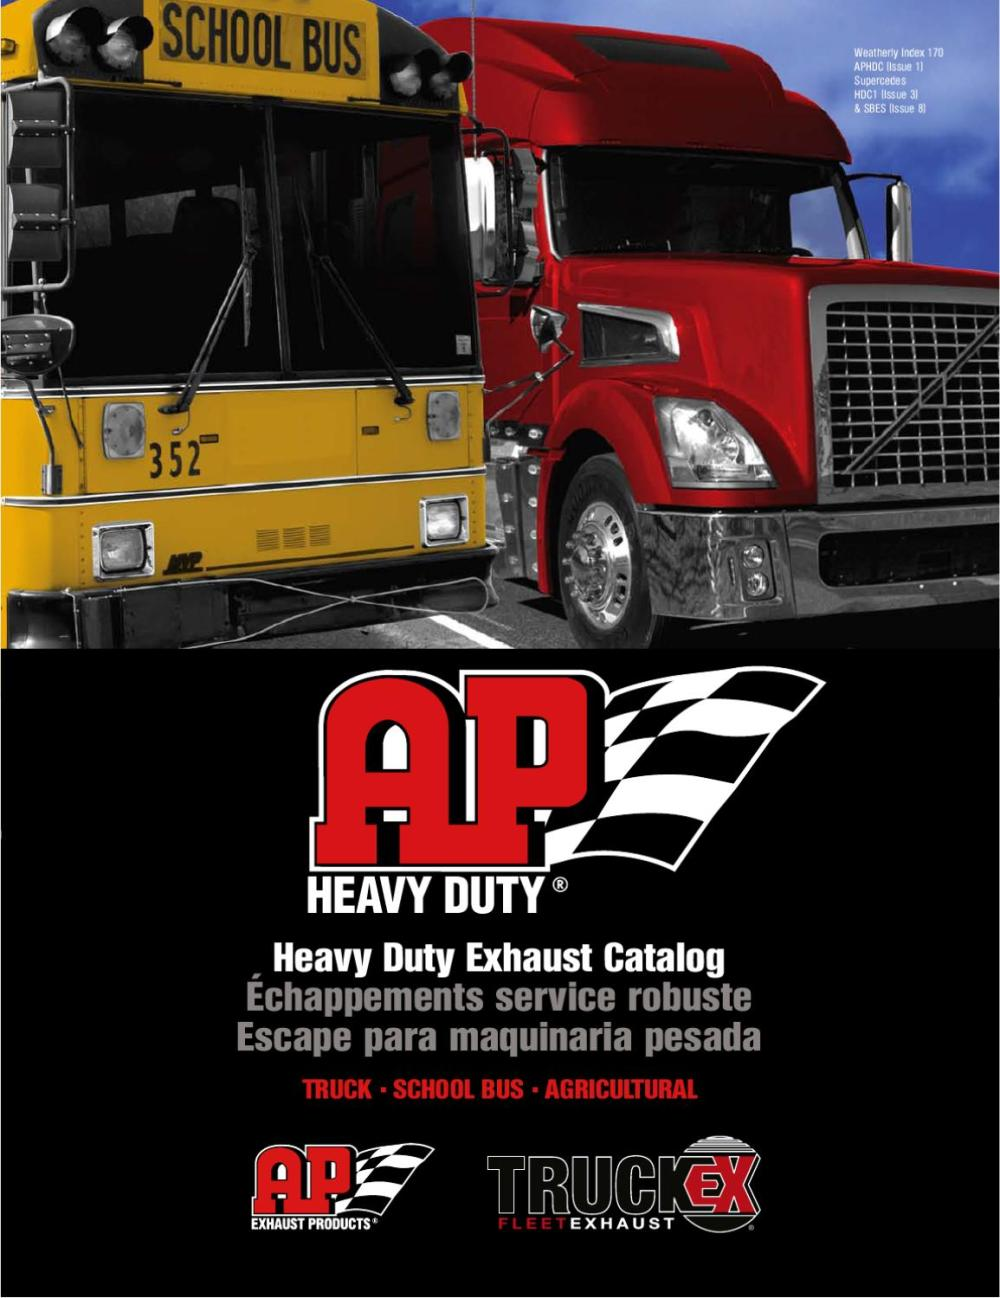 medium resolution of  aphdc hd exhaust catalog from ap exhaust